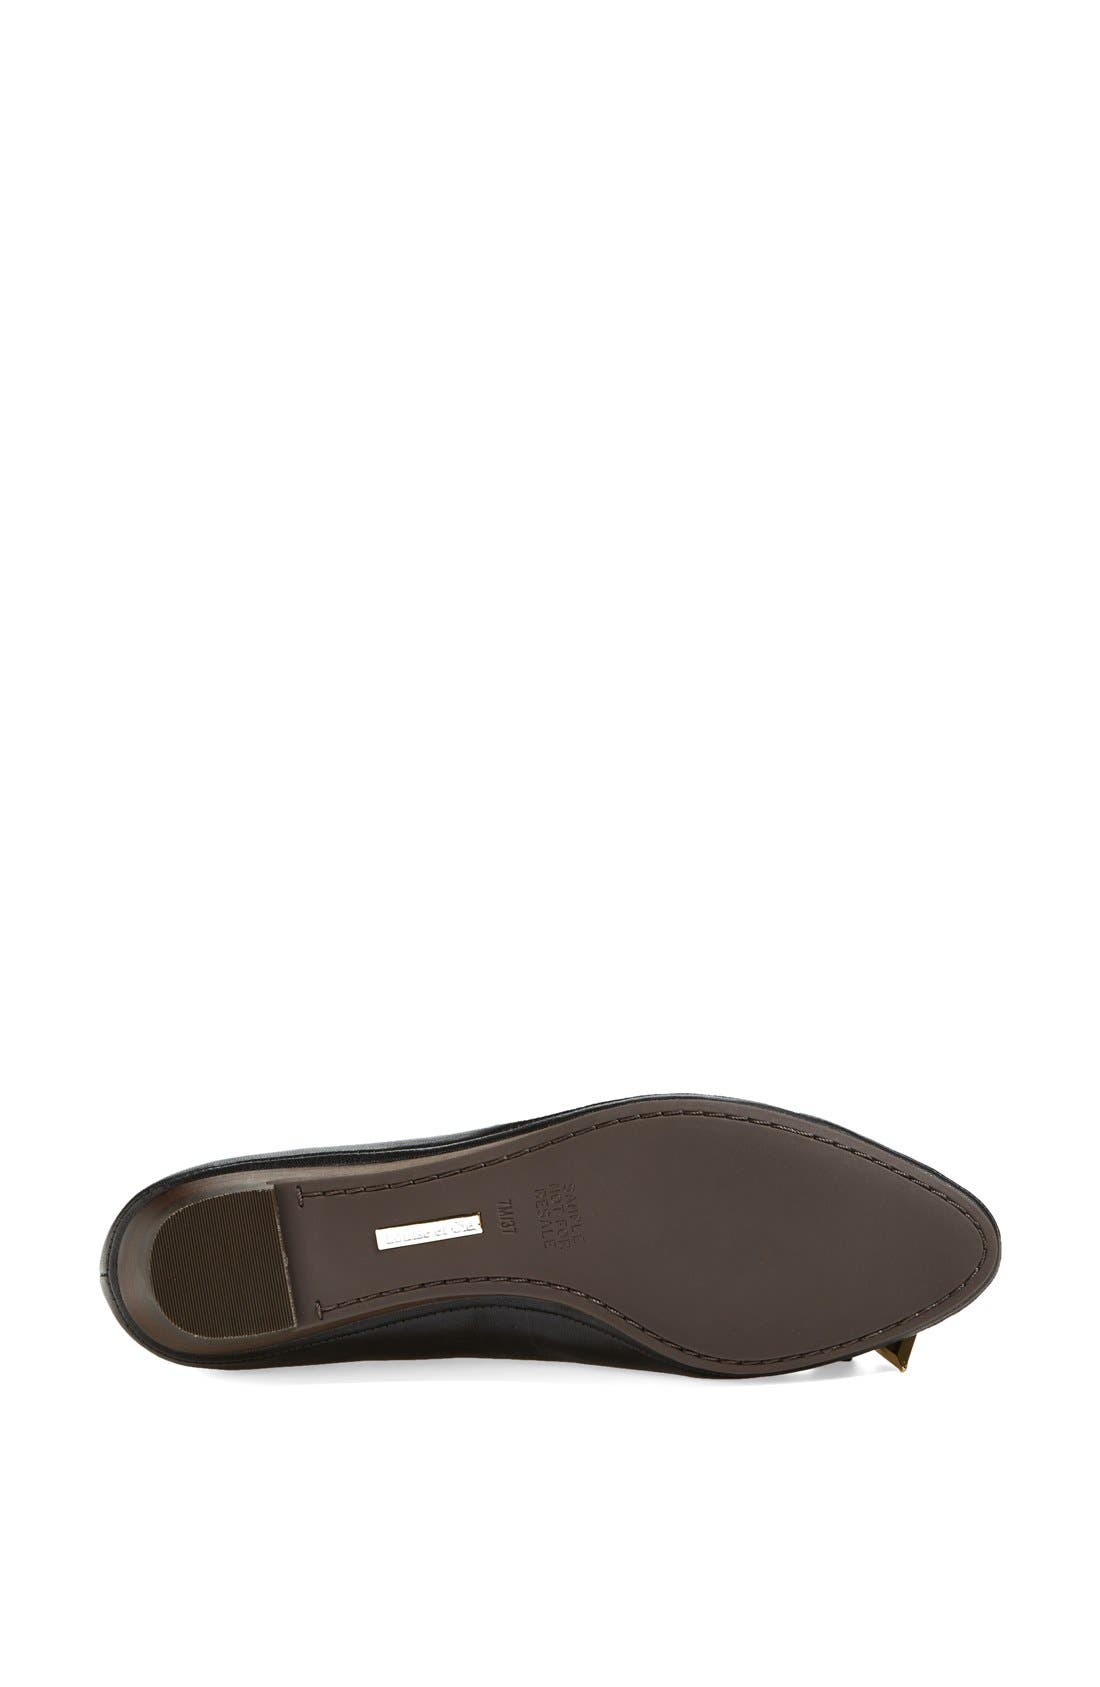 Alternate Image 4  - Louise et Cie 'Azalya' Mini Wedge Flat (Women)